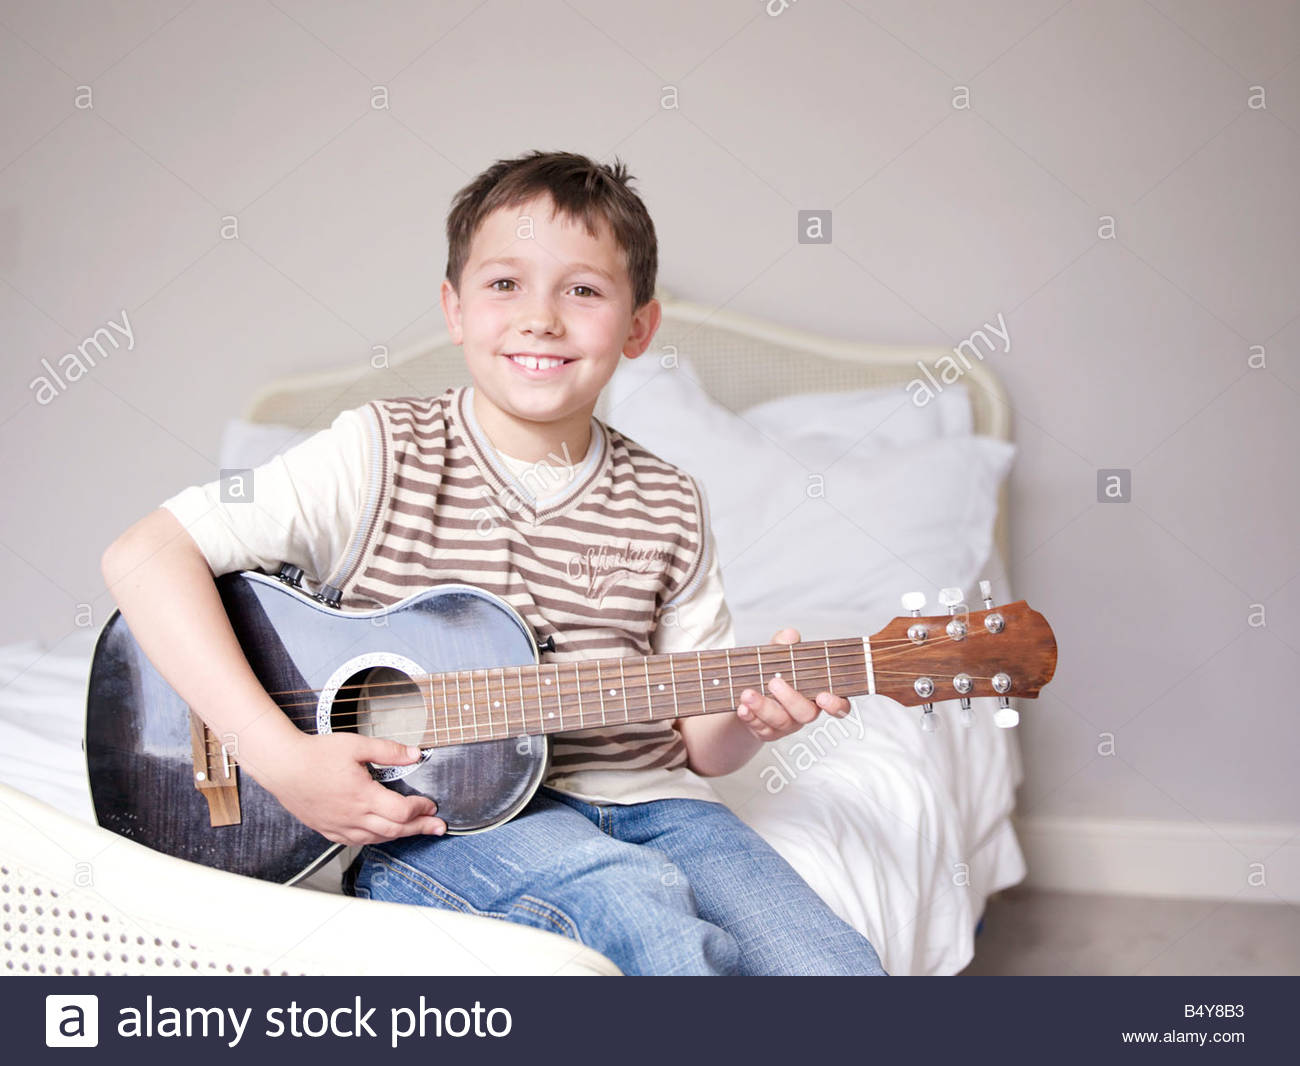 Young boy sitting on bed playing guitar Stock Photo